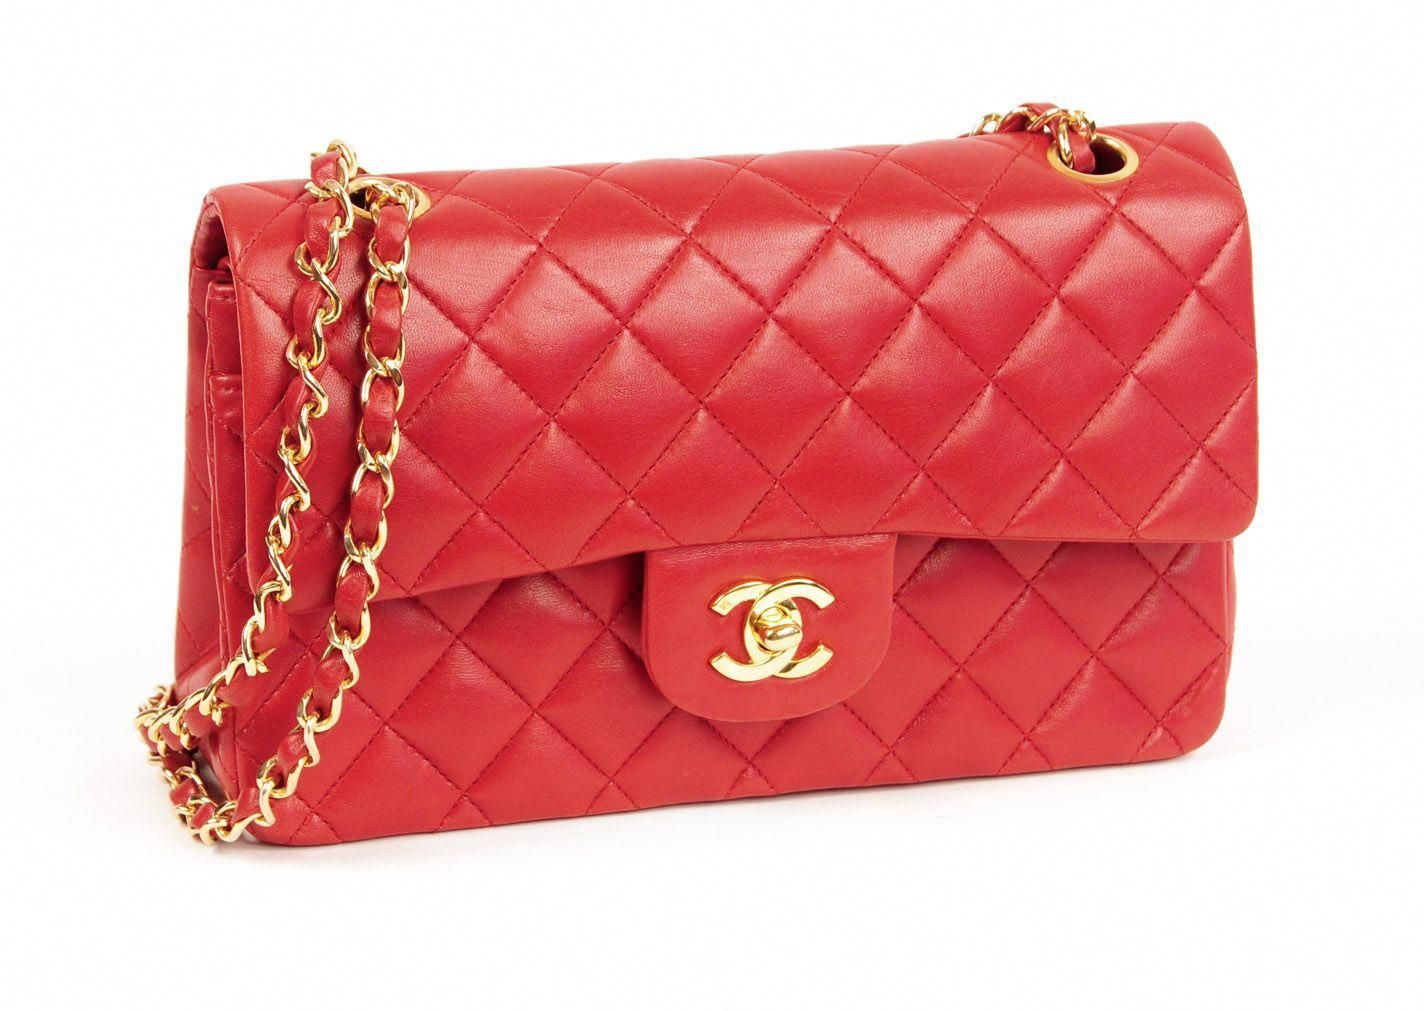 98db9f76e8e4c2 Image detail for -Resurrection Vintage › OH LITTLE RED CHANEL BAG…YOU SURE  LOOK GOOD #Chanelhandbags